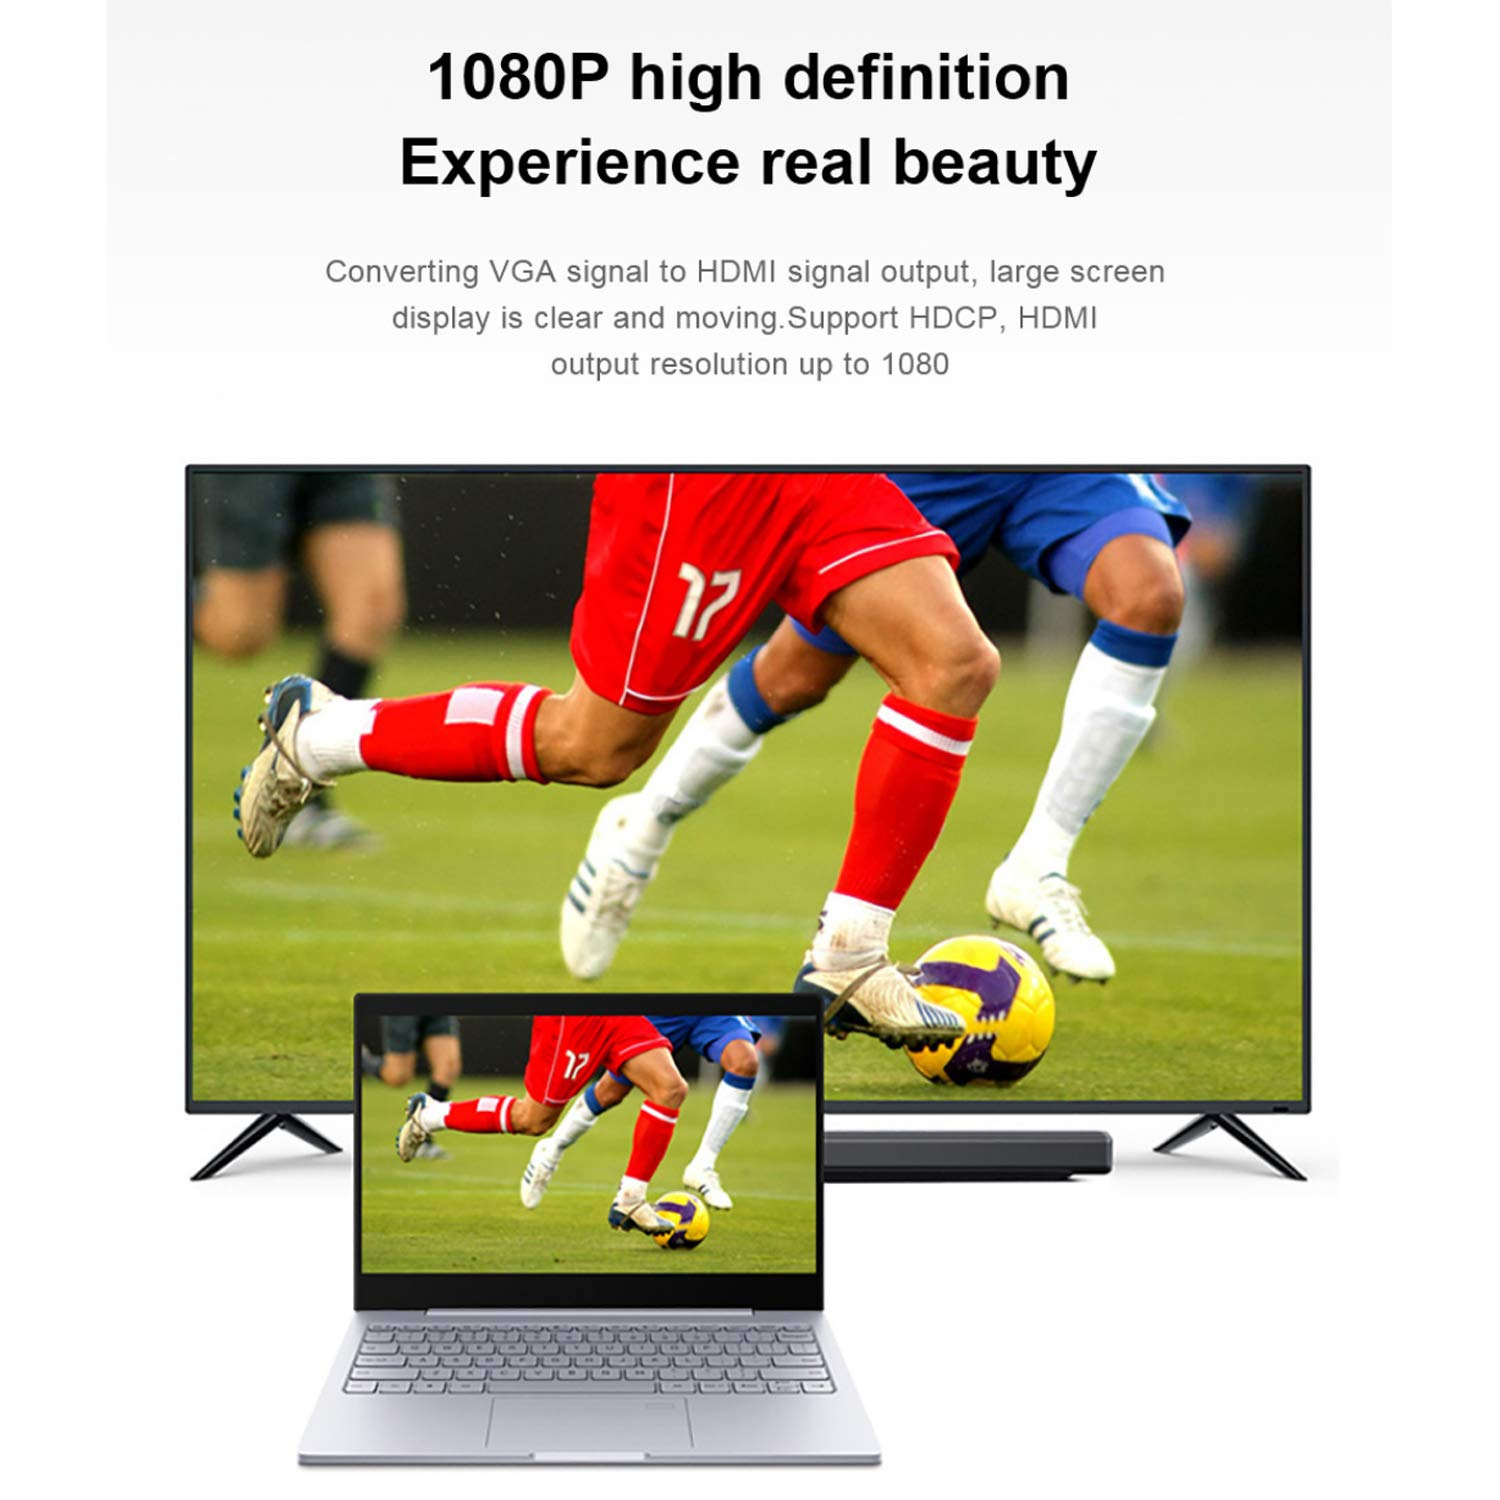 VGA to HDMI Adapter, VGA Male to HDMI Female Converter with 1080P HD Video and Audio Support for Connecting Laptop, desktop with VGA(D-Sub,HD 15-pin) to Monitor, HDTV with HDMI.(HDMI Female 12 inches) by Elecable (Image #4)